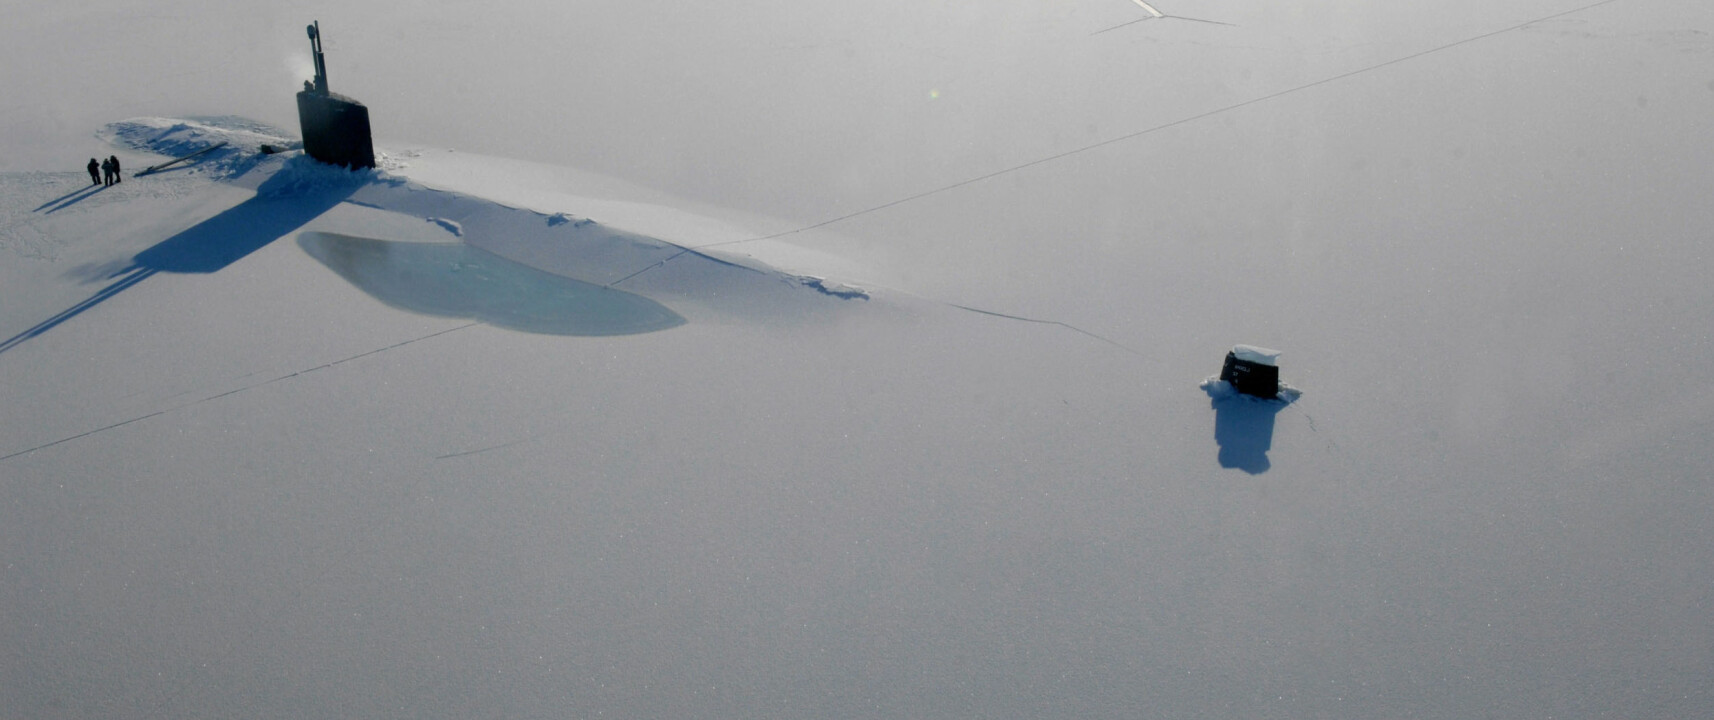 This picture provided by the US Navy on March 24, 2009 shows Los Angeles-class submarine USS Annapolis on the surface of the Arctic Ocean after breaking through three feet (1m) of ice on March 21, 2009 during Ice Exercise (ICEX) 2009. Annapolis and the Los Angeles-class submarine USS Helena are participating in ICEX 2009. With the support from the University of Washington Applied Physics Laboratory, ICEX 2009 enables the Submarine Force to operate and train in the challenging and unique environment that characterizes the Arctic region.           AFP PHOTO/US Navy/Tiffini M. Jones/HO           ++RESTRICTED TO EDITORIAL USE++